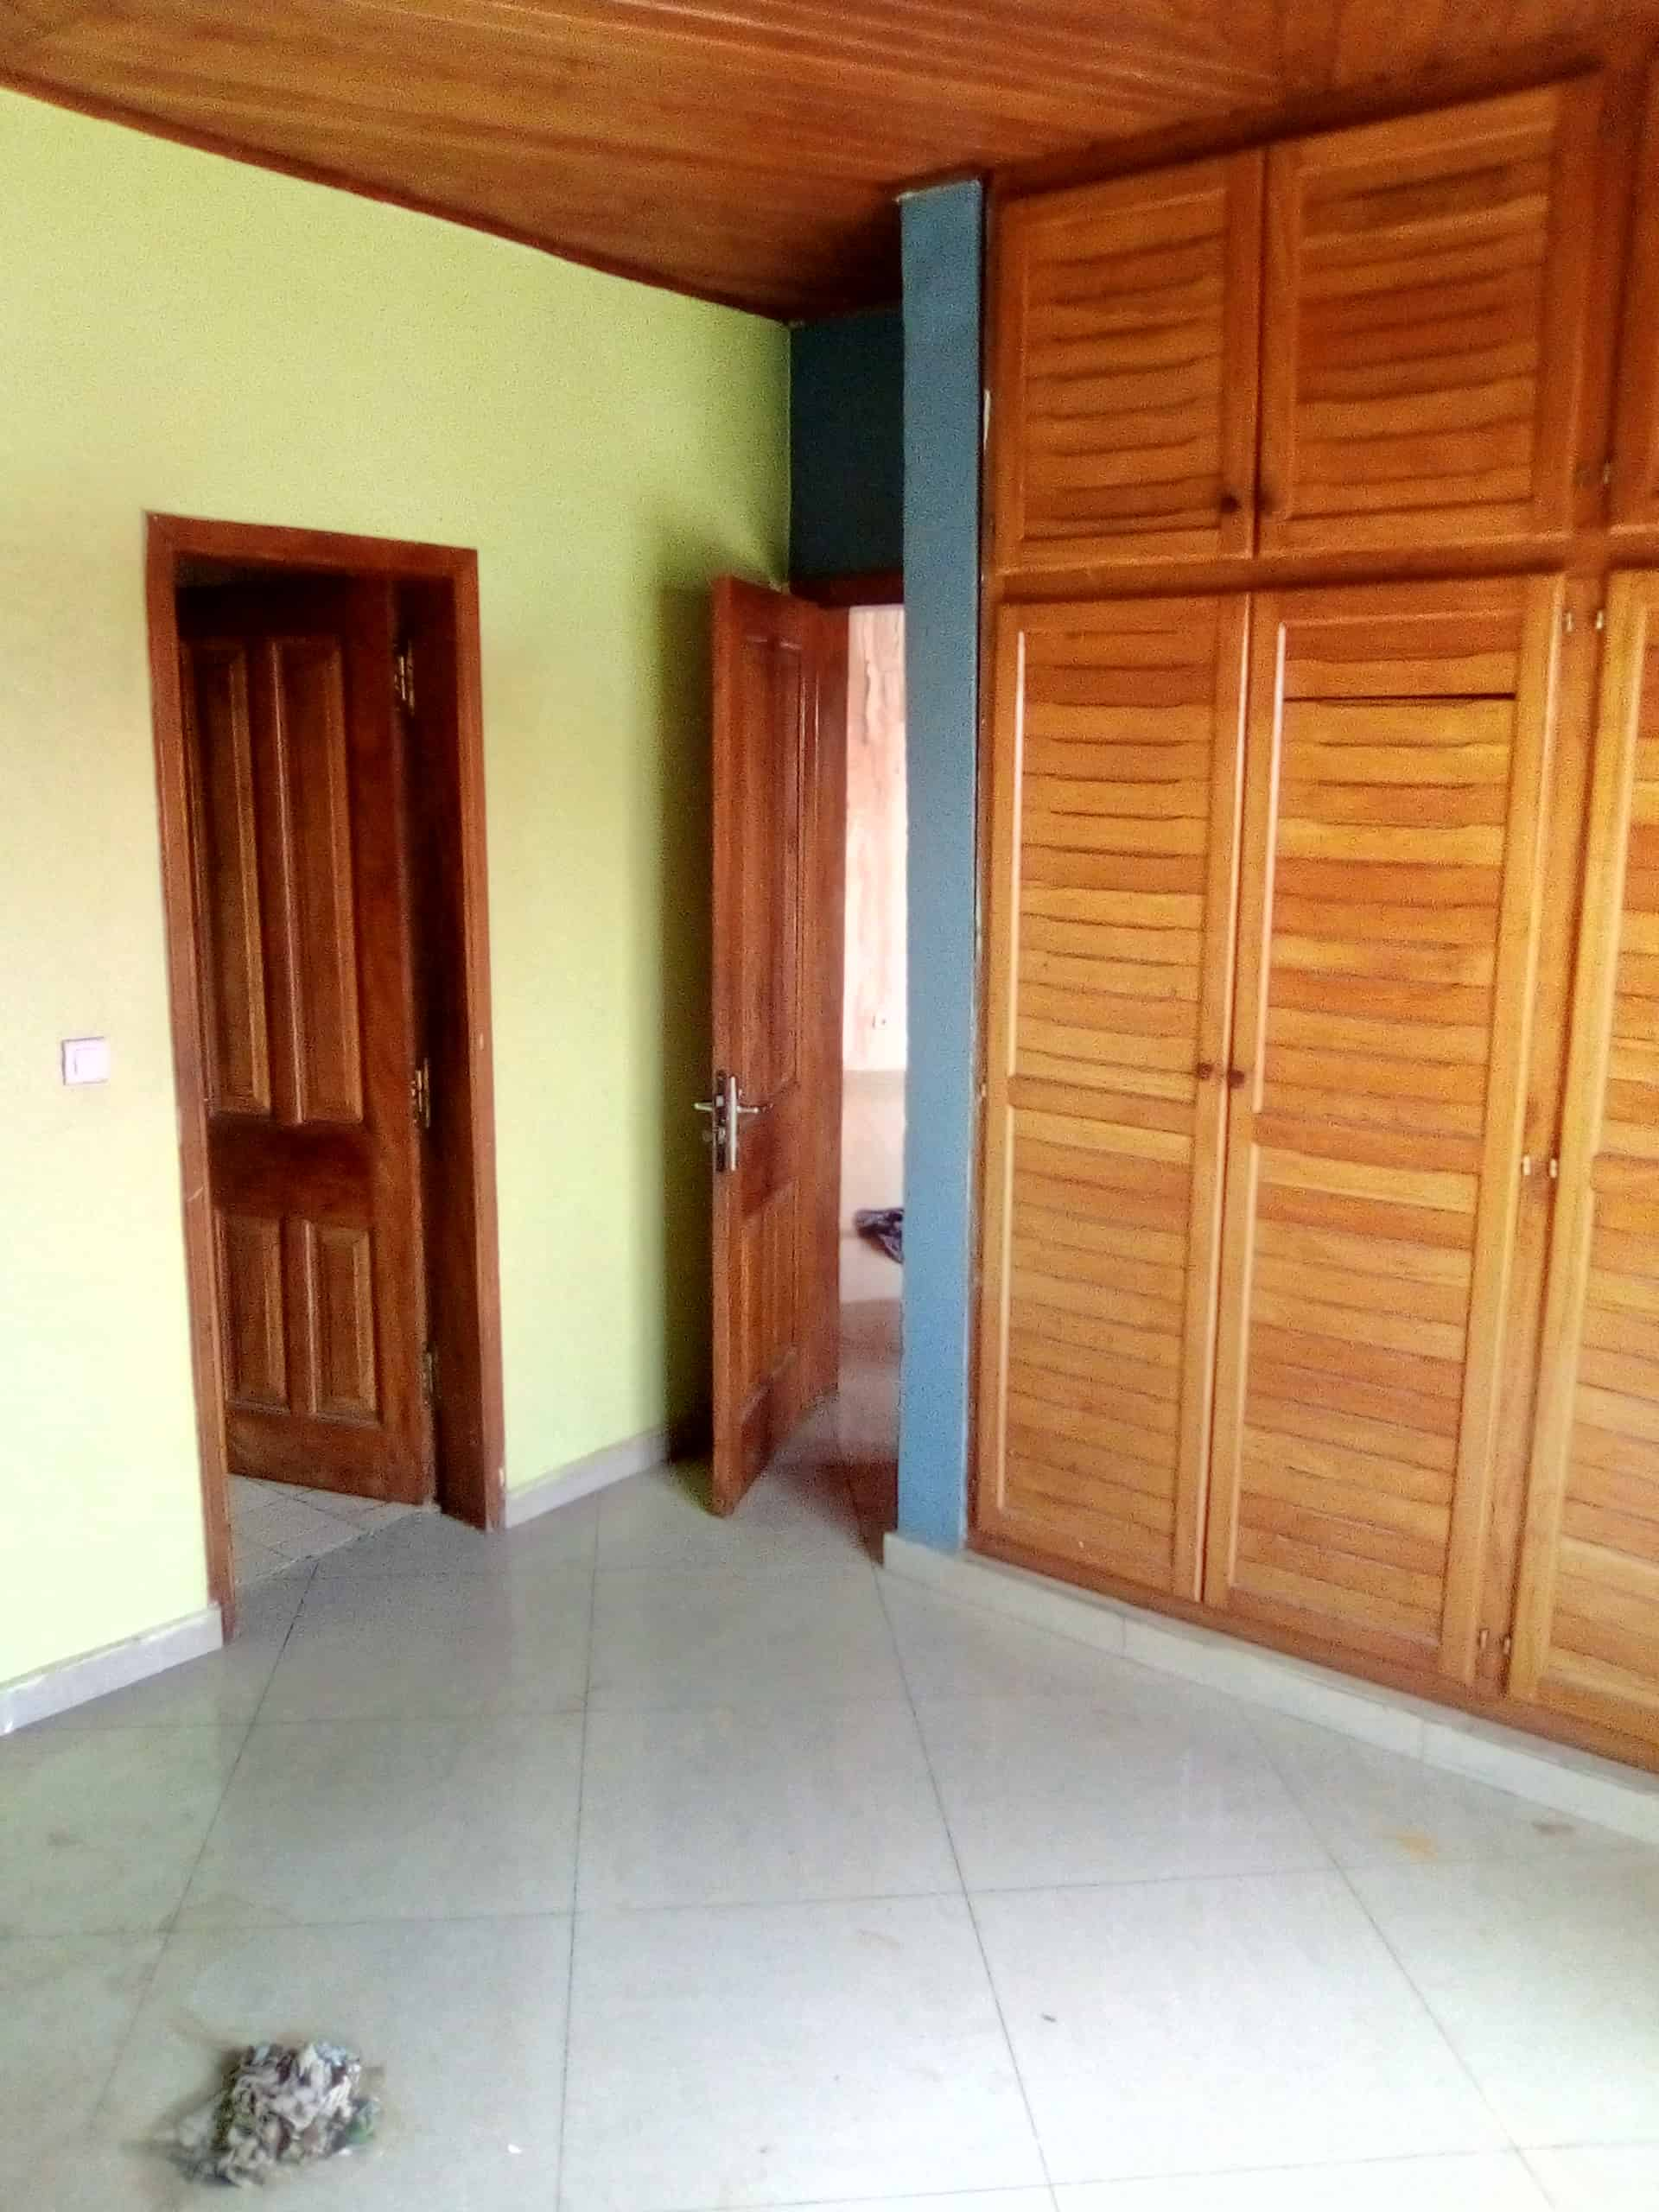 Apartment to rent - Douala, Kotto, Vers résidence kotto - 1 living room(s), 2 bedroom(s), 1 bathroom(s) - 80 000 FCFA / month